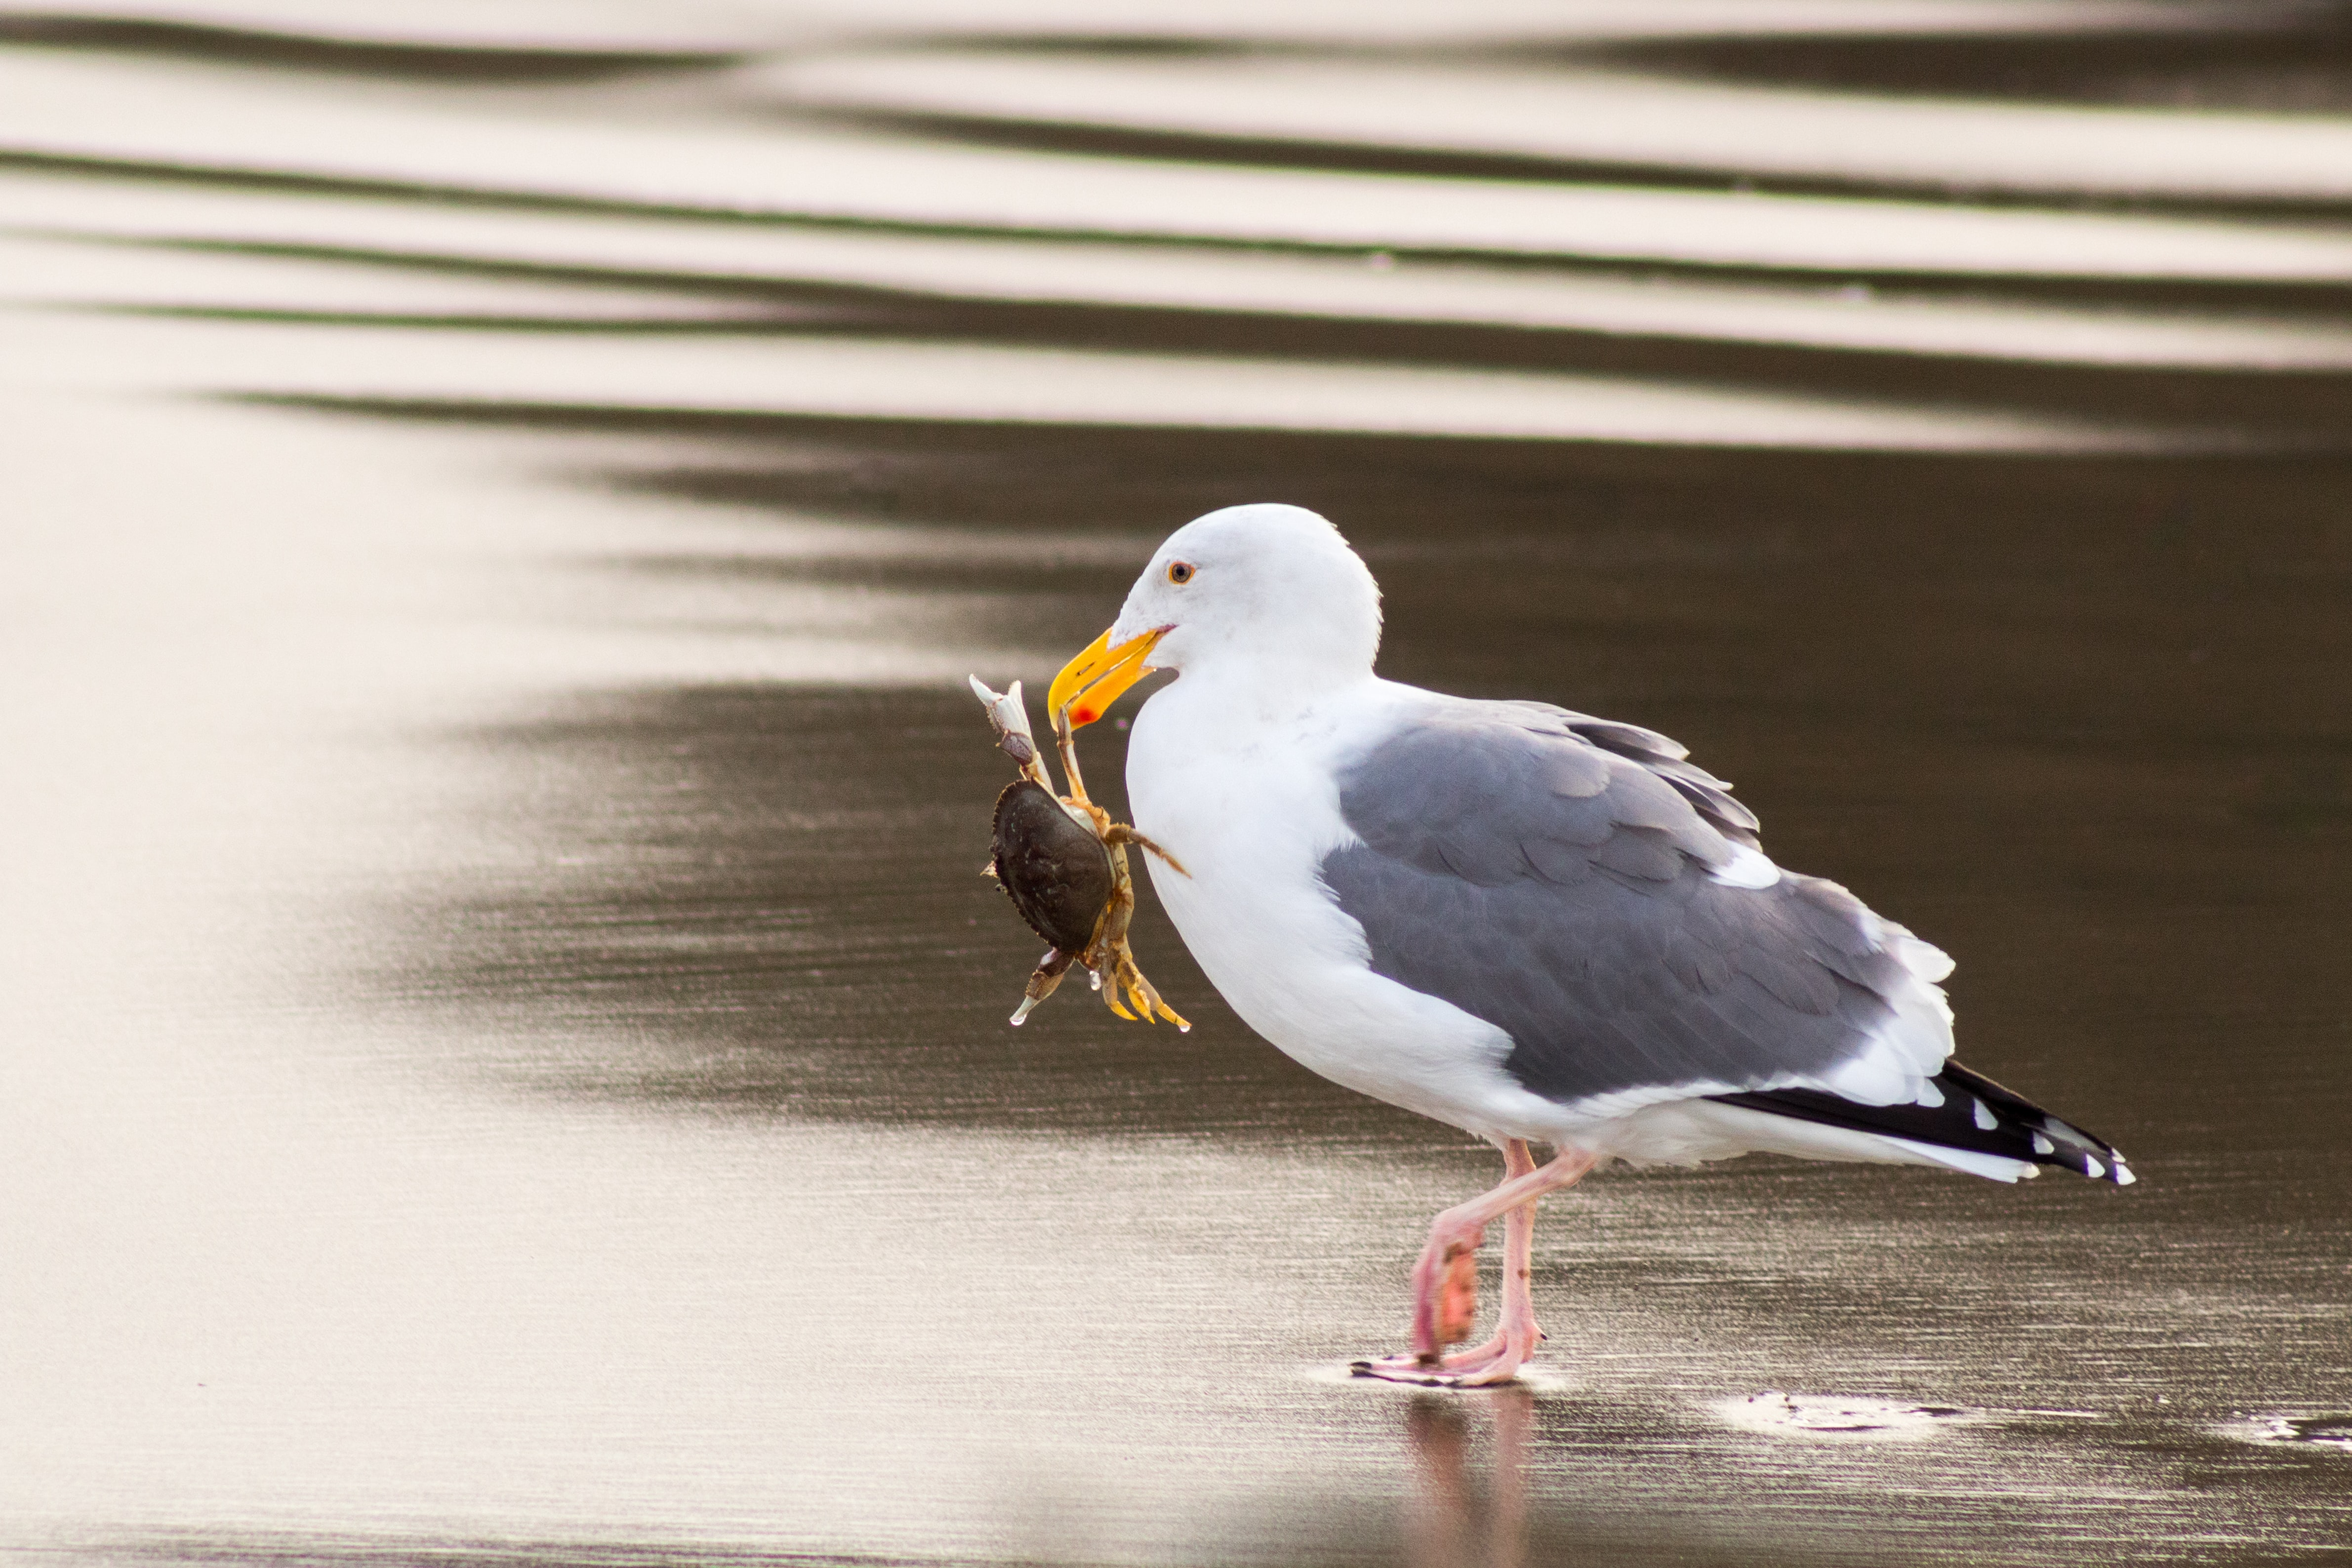 seagull carrying crab using its beak